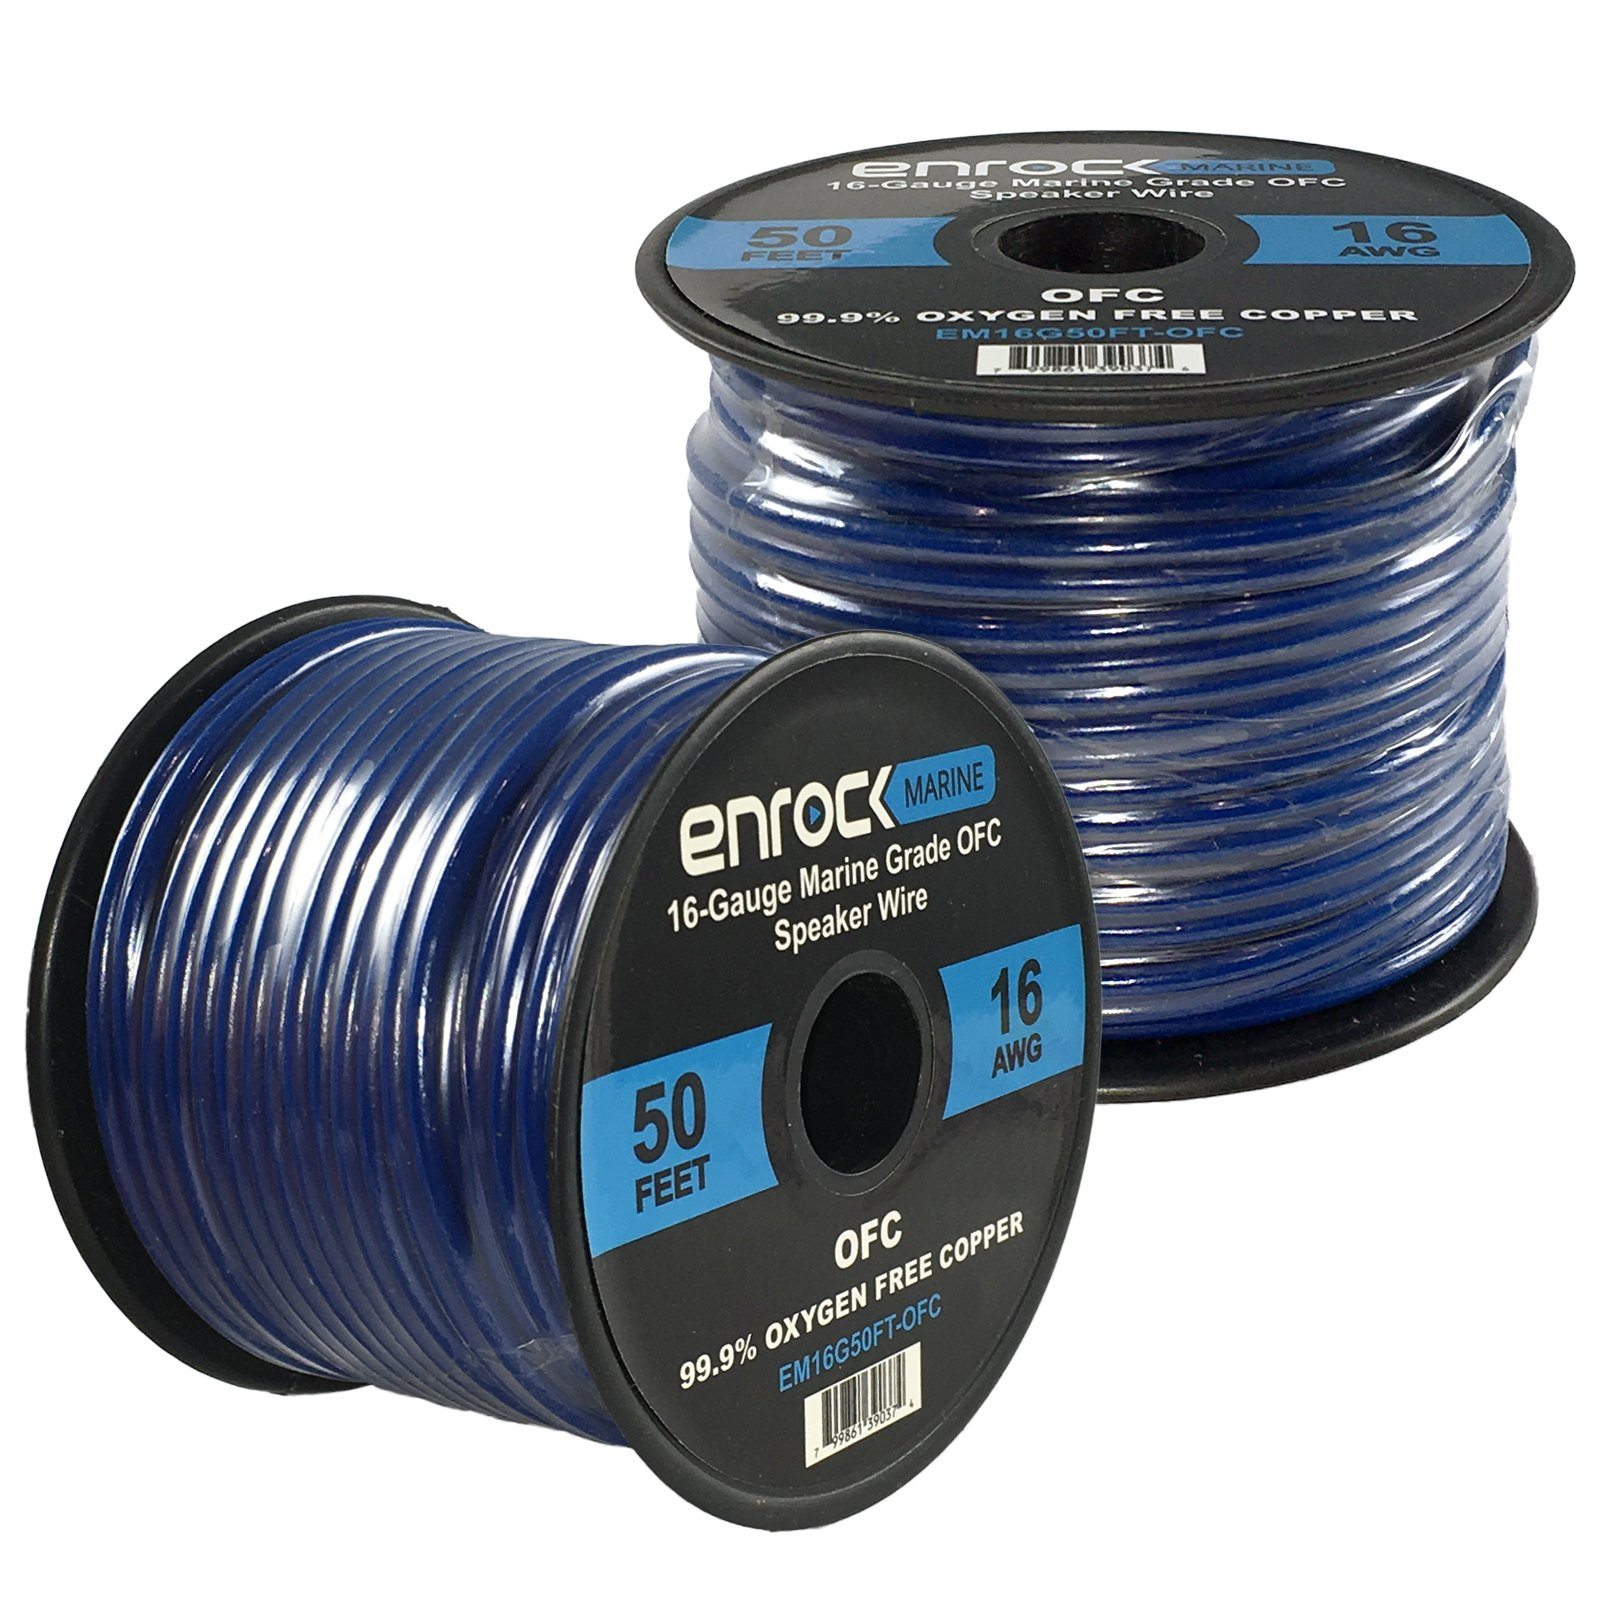 2 Roll Of 50ft EnrockMarine 16 Gauge Tin Plated OFC Speaker Wire Cable corrosion resistant jacket